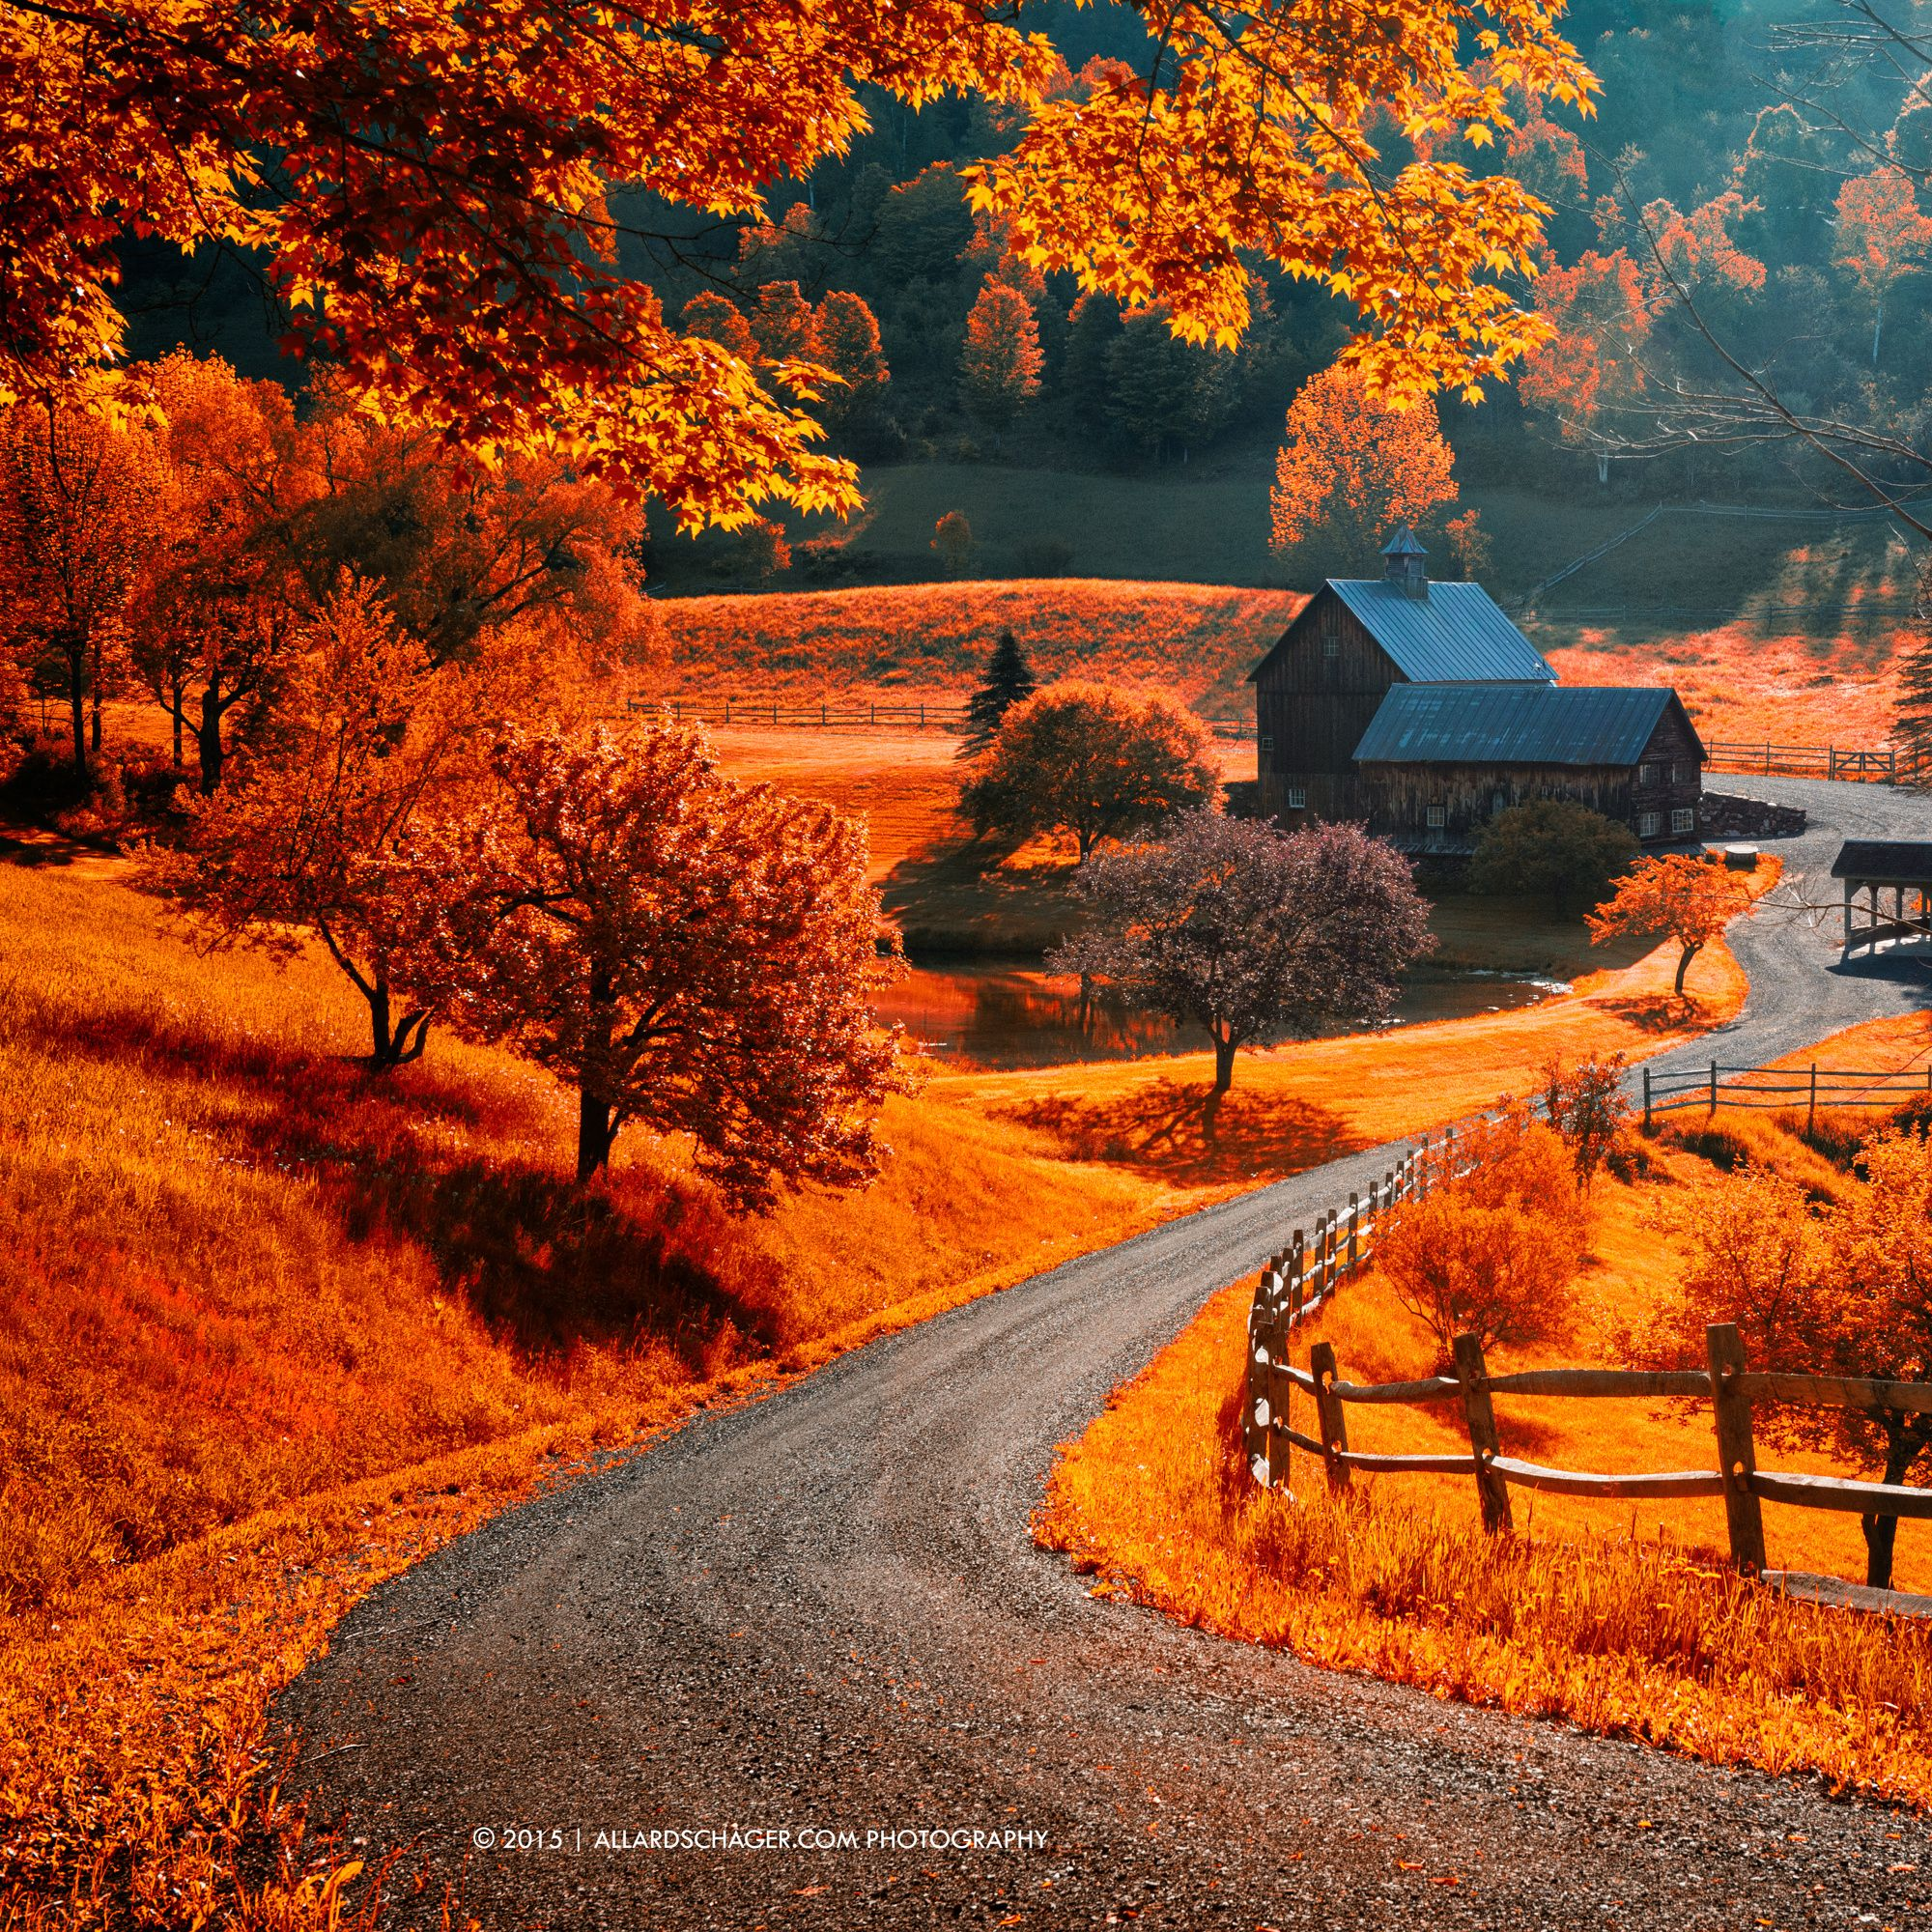 Vermont on my Mind Autumn scenery, Scenery, Fall pictures